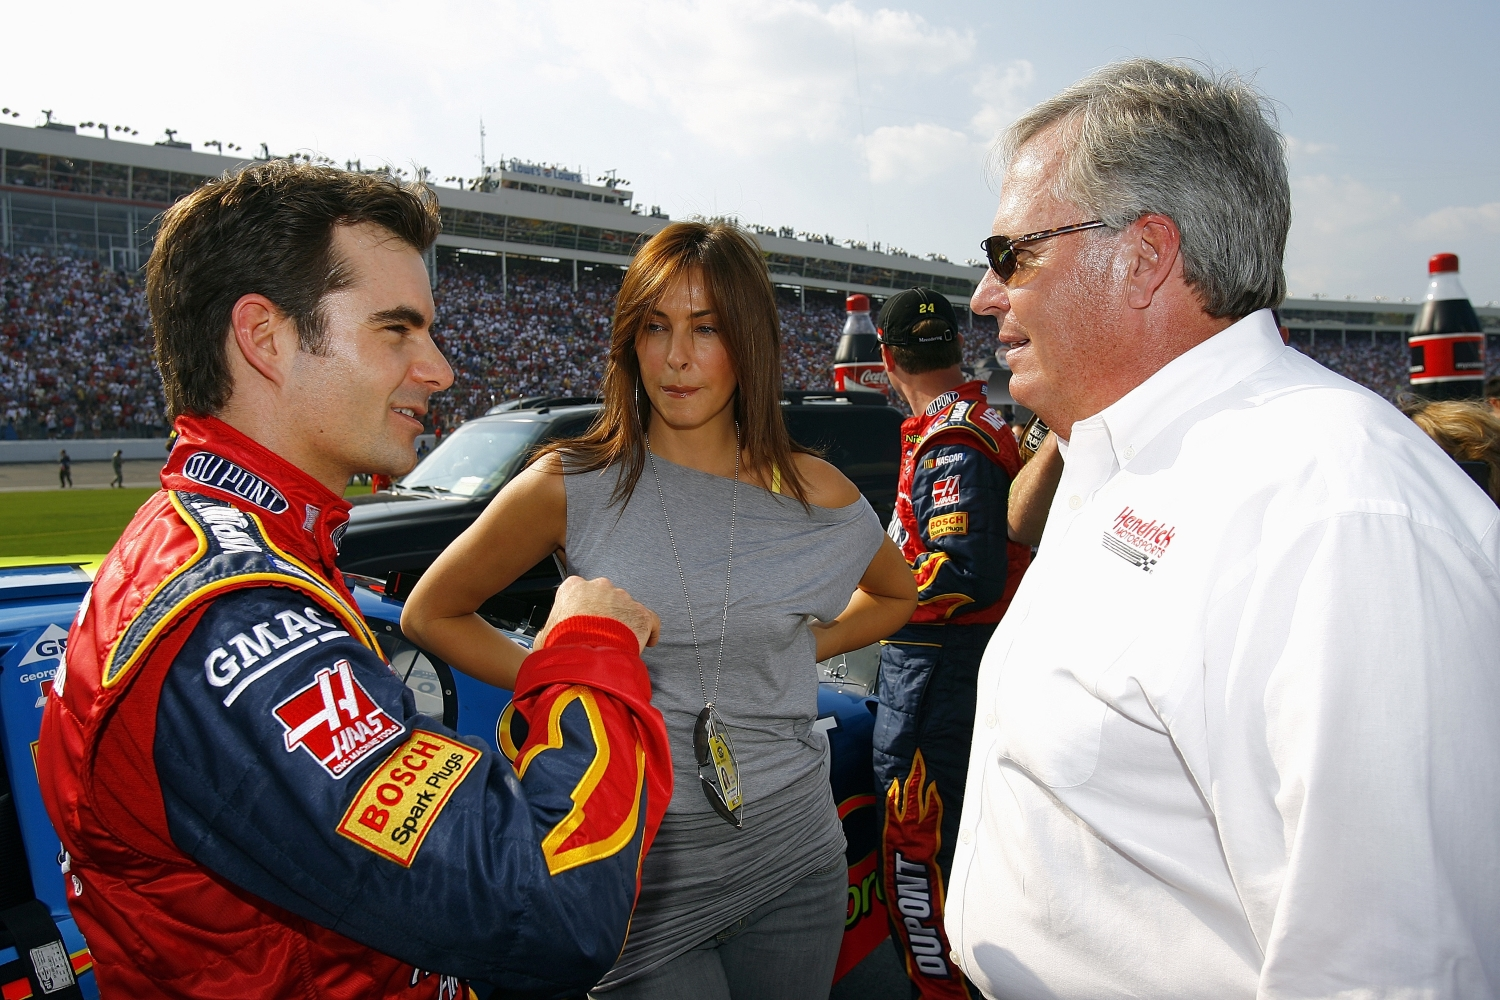 Jeff Gordon, driver of the #24 DuPont Chevrolet, talks with his girlfriend Ingrid Vandebosch and car owner Rick Hendrick before the NASCAR Nextel Cup Series Coca-Cola 600 at the Lowe's Motor Speedway on May 28, 2006.